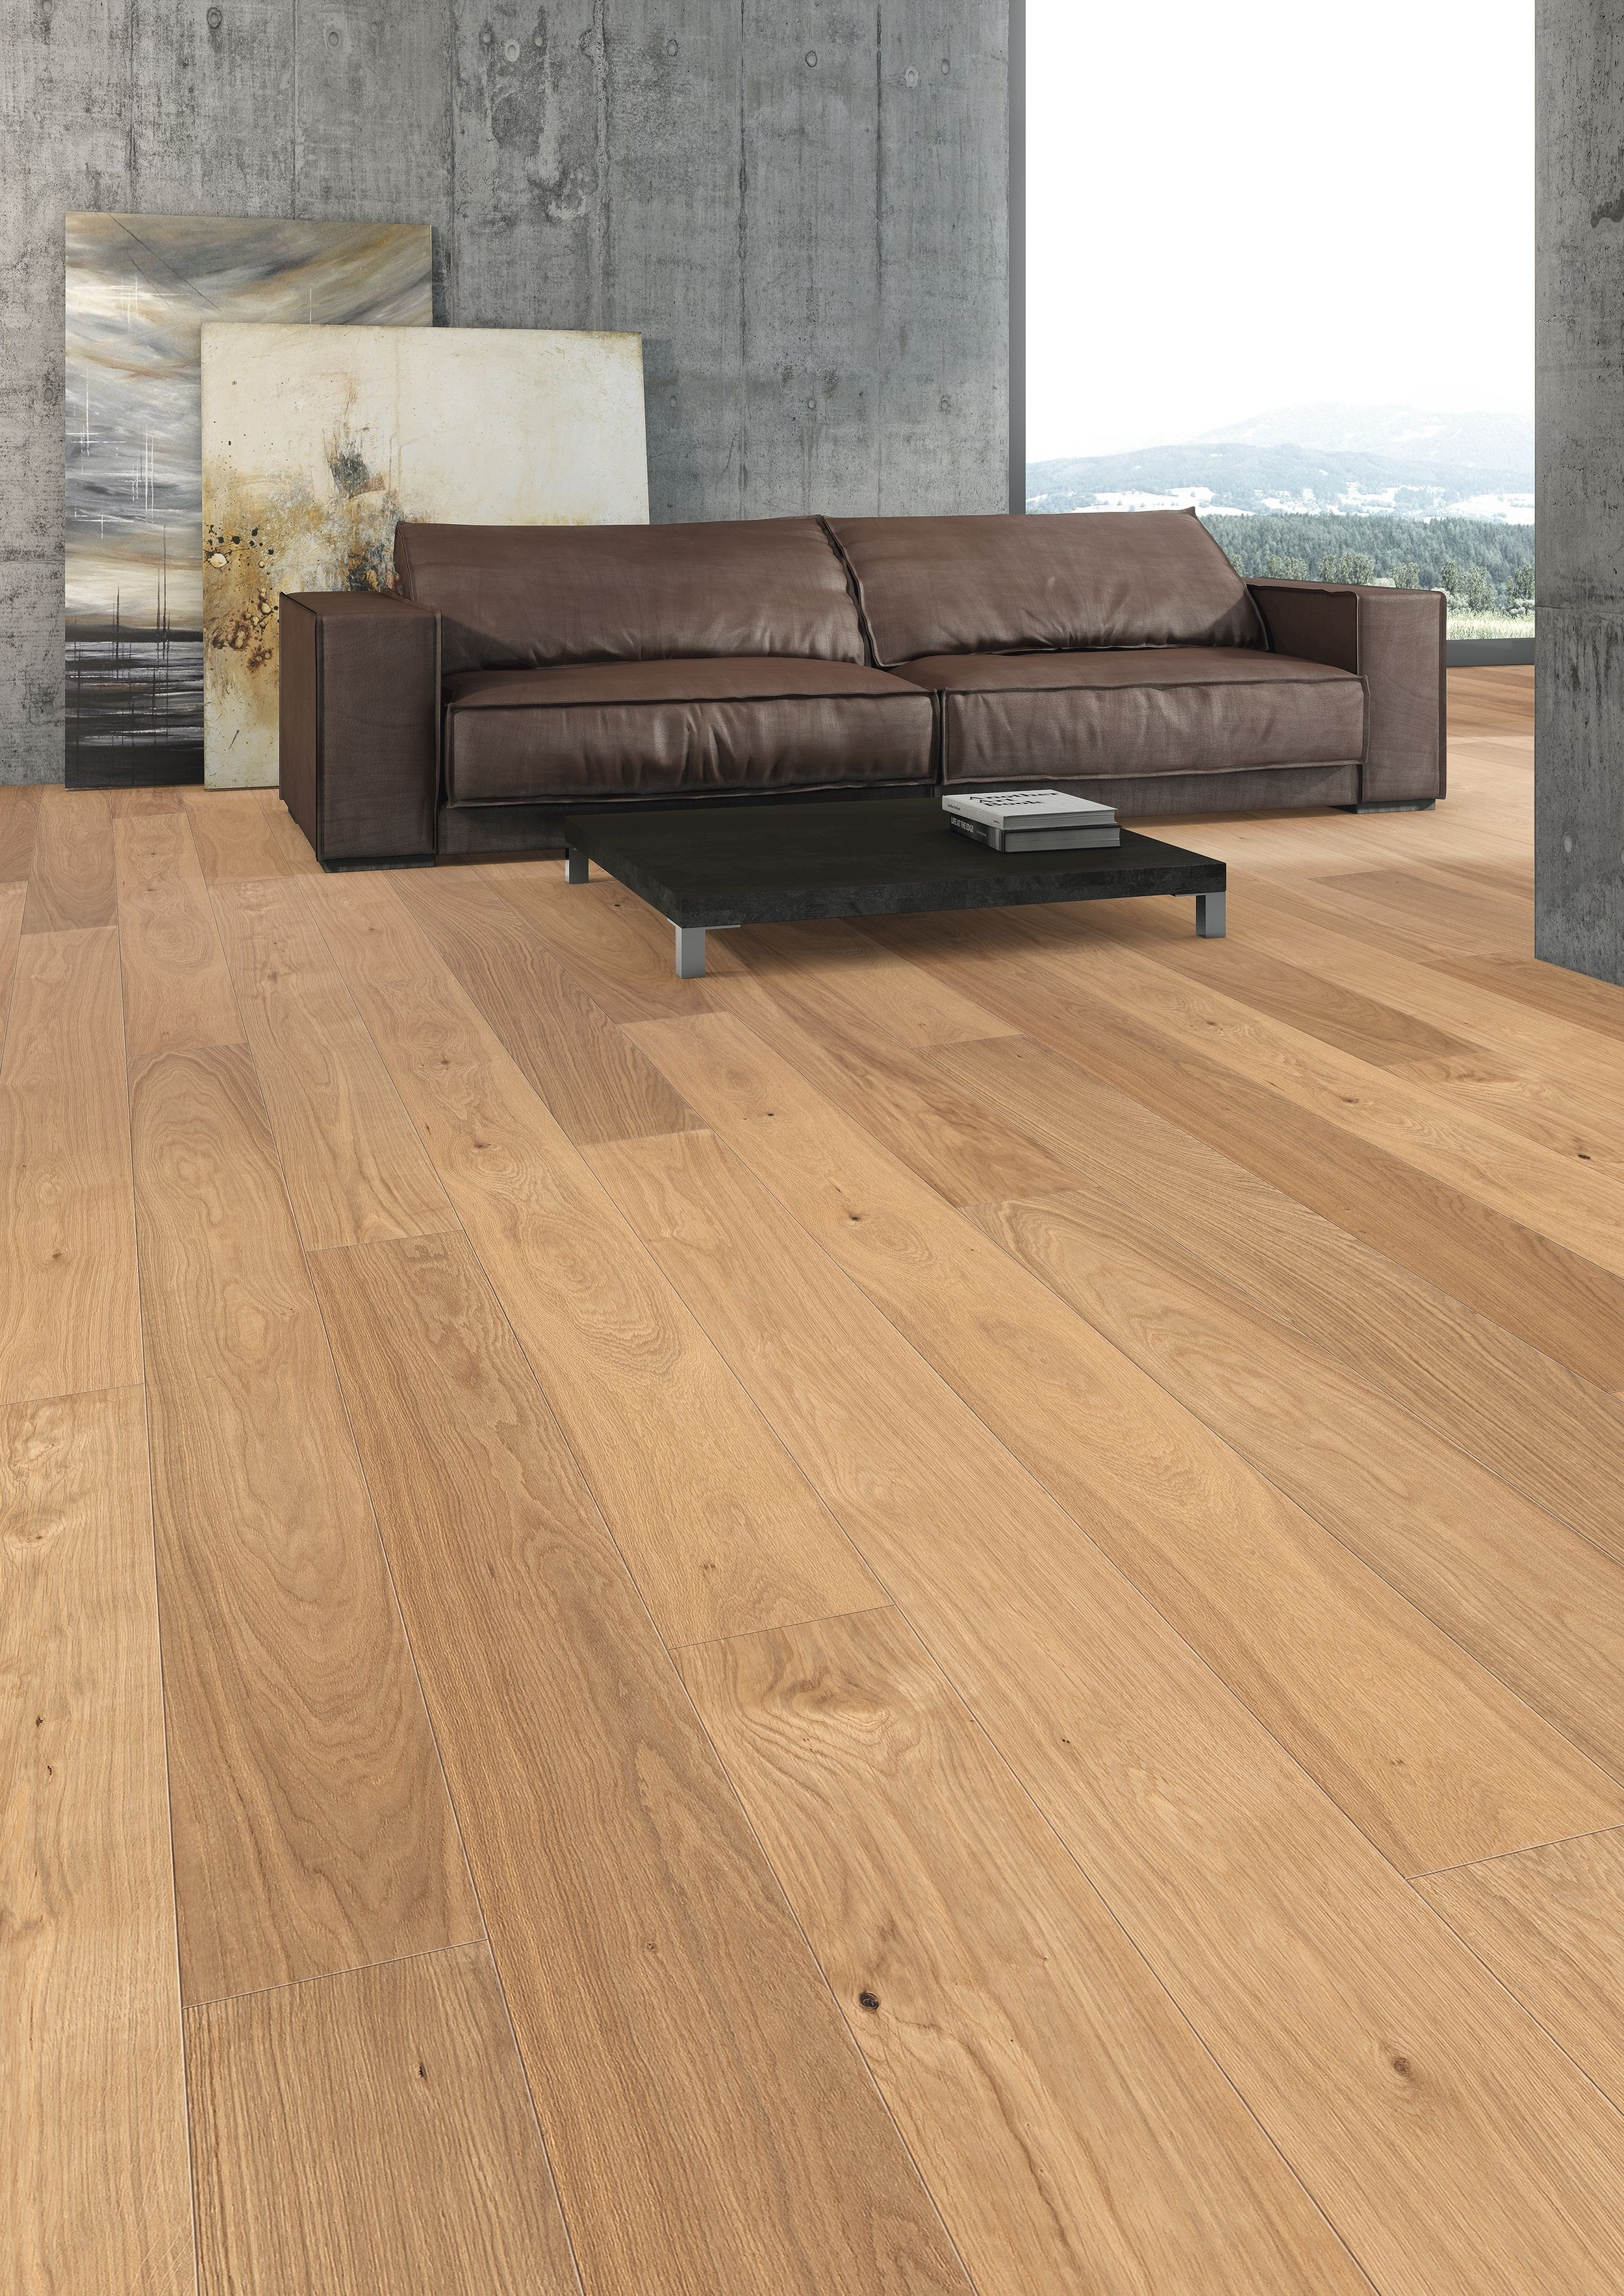 Dimension Lame De Parquet Lignum Maxi Stab Lame Landhausdiele Lames Larges Art